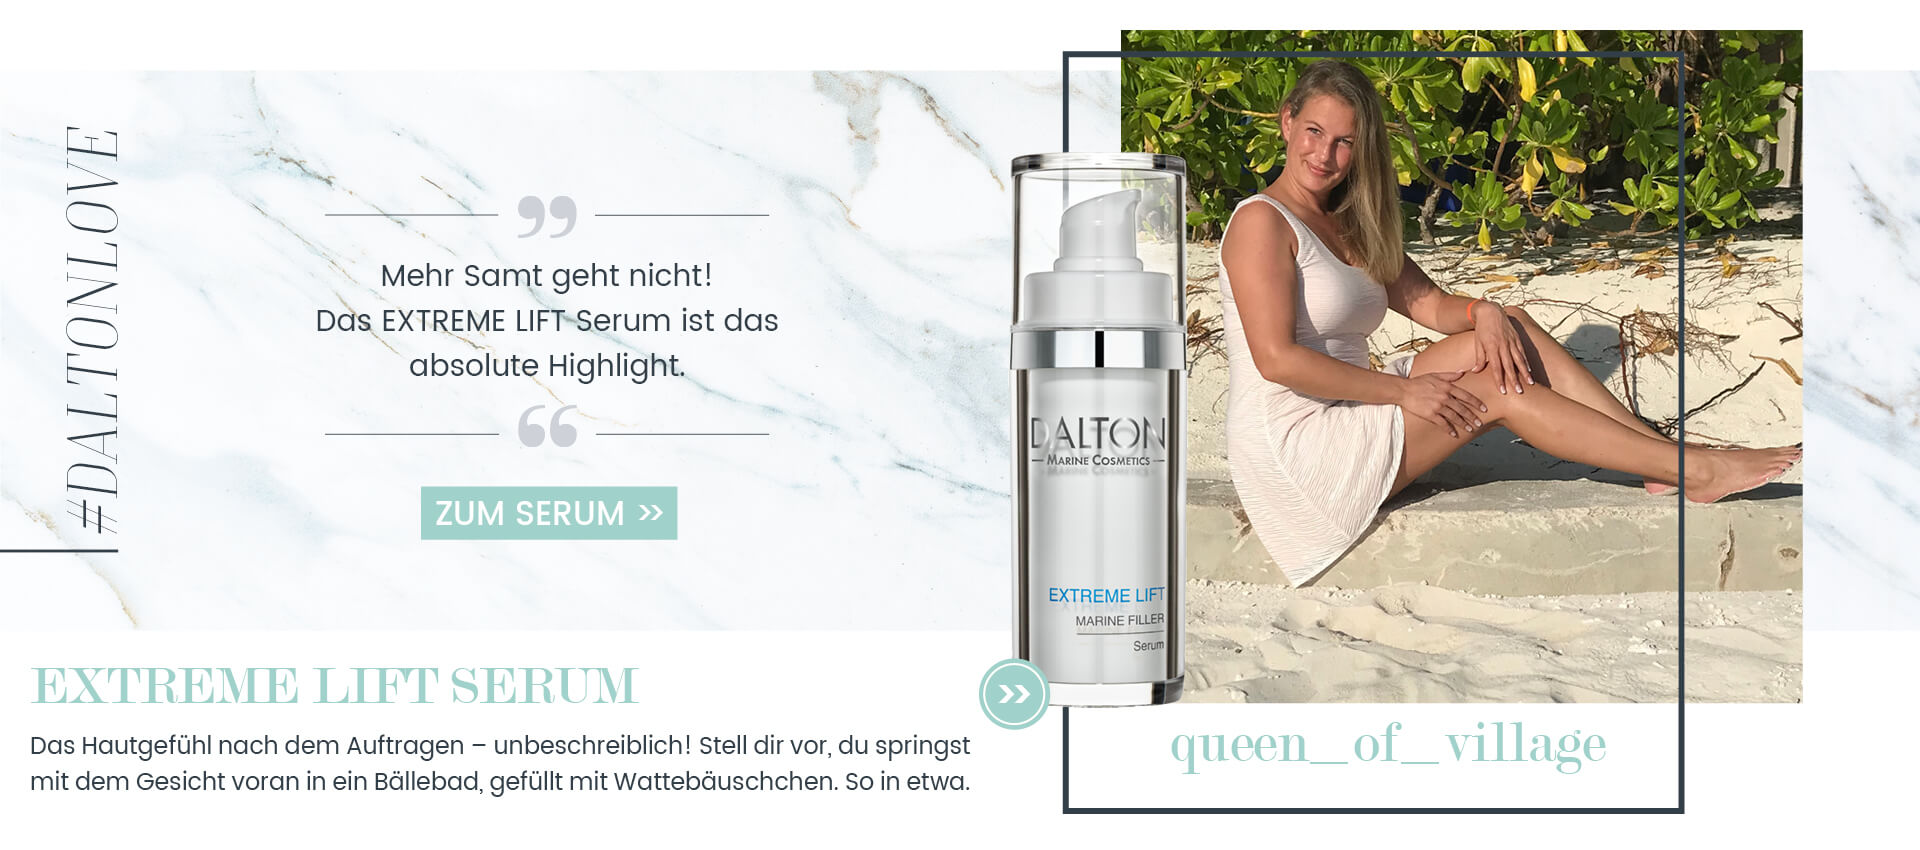 Marine Filler Serum von queen of village